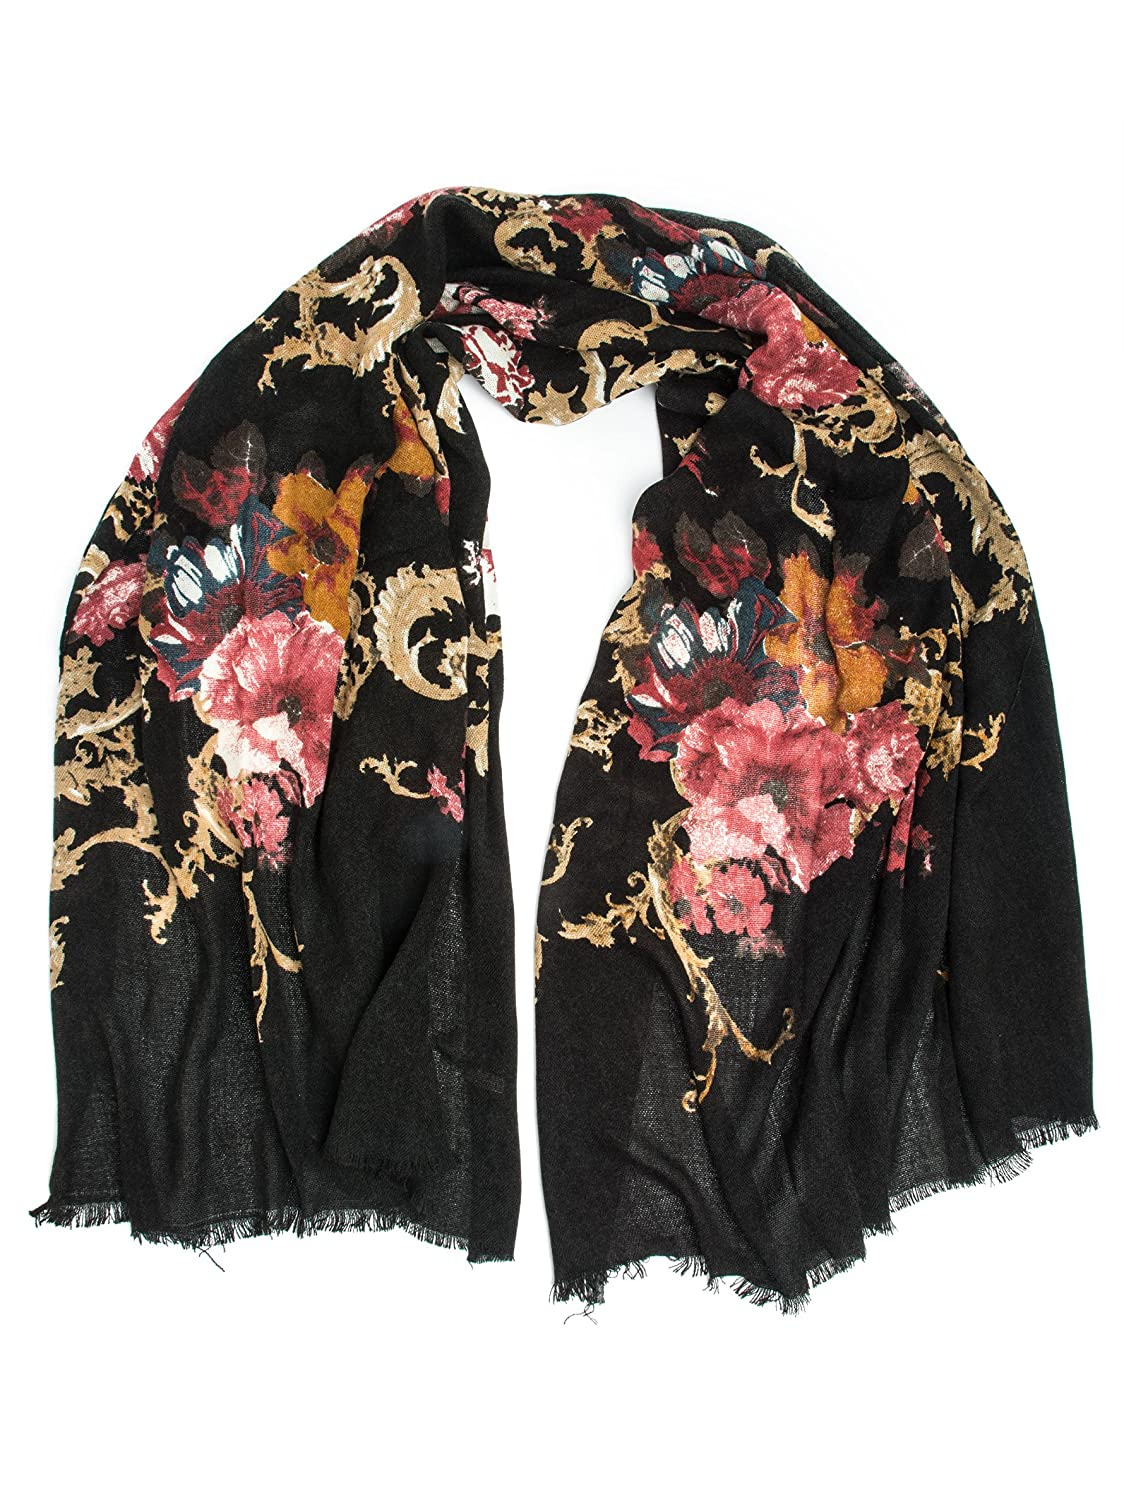 1920s Accessories Guide Eleanor blanket scarf oversized winter scarf floral scarf $26.95 AT vintagedancer.com